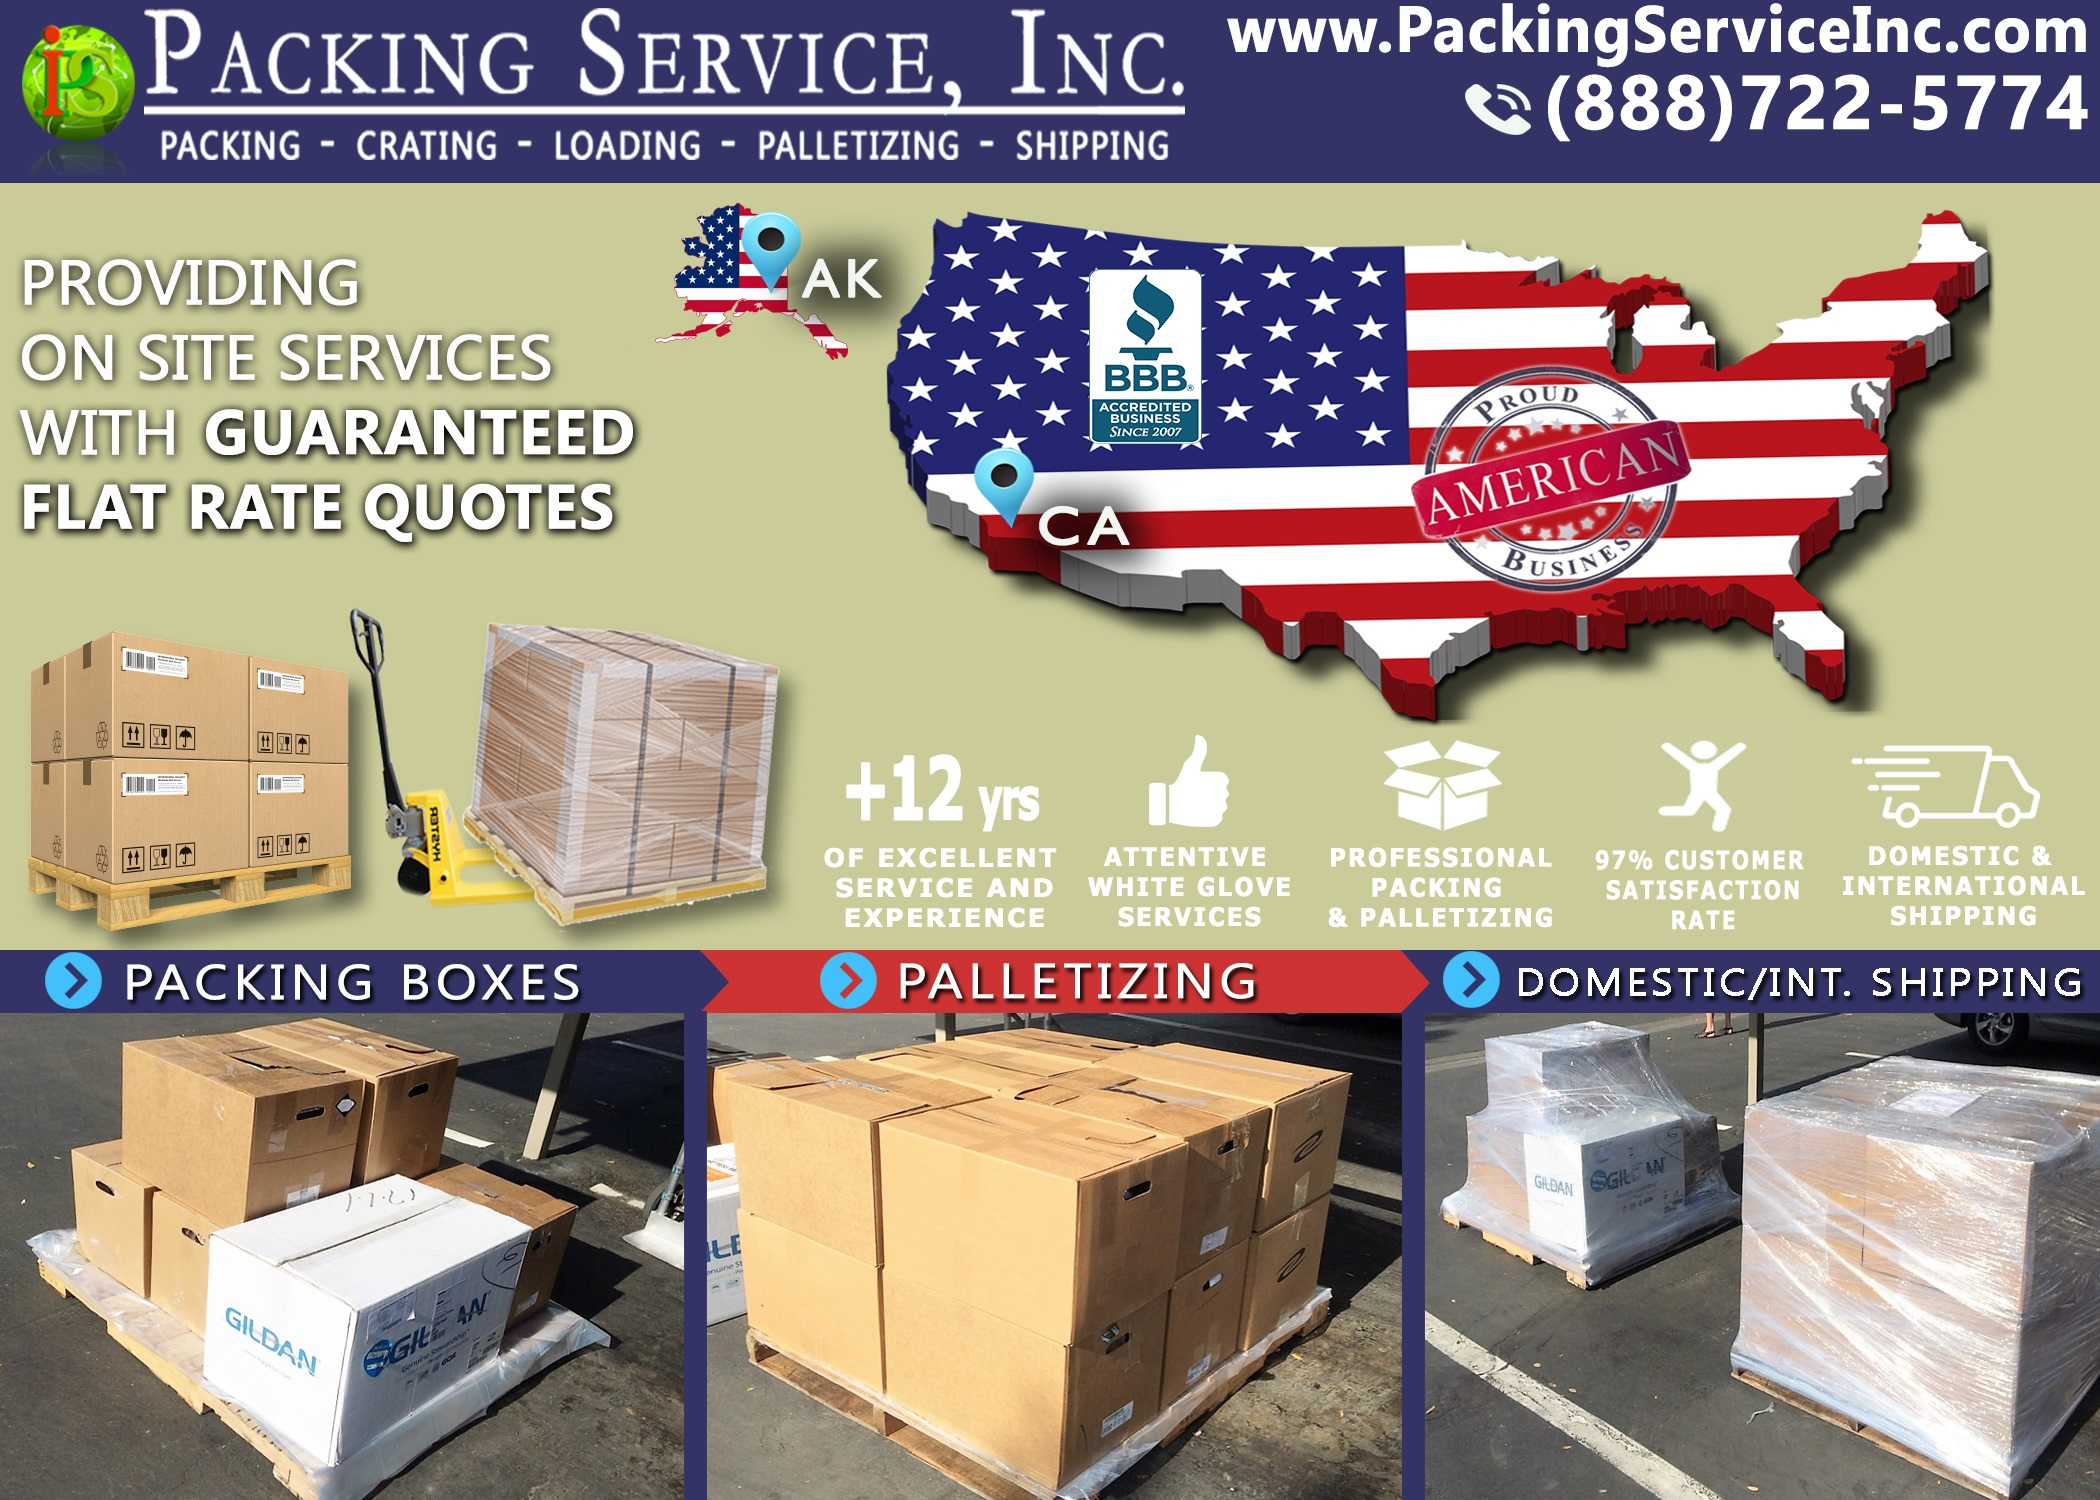 packing-boxes-palletizing-and-shipping-from-fresno-ca-to-palmer-ak-with-packing-service-inc-987